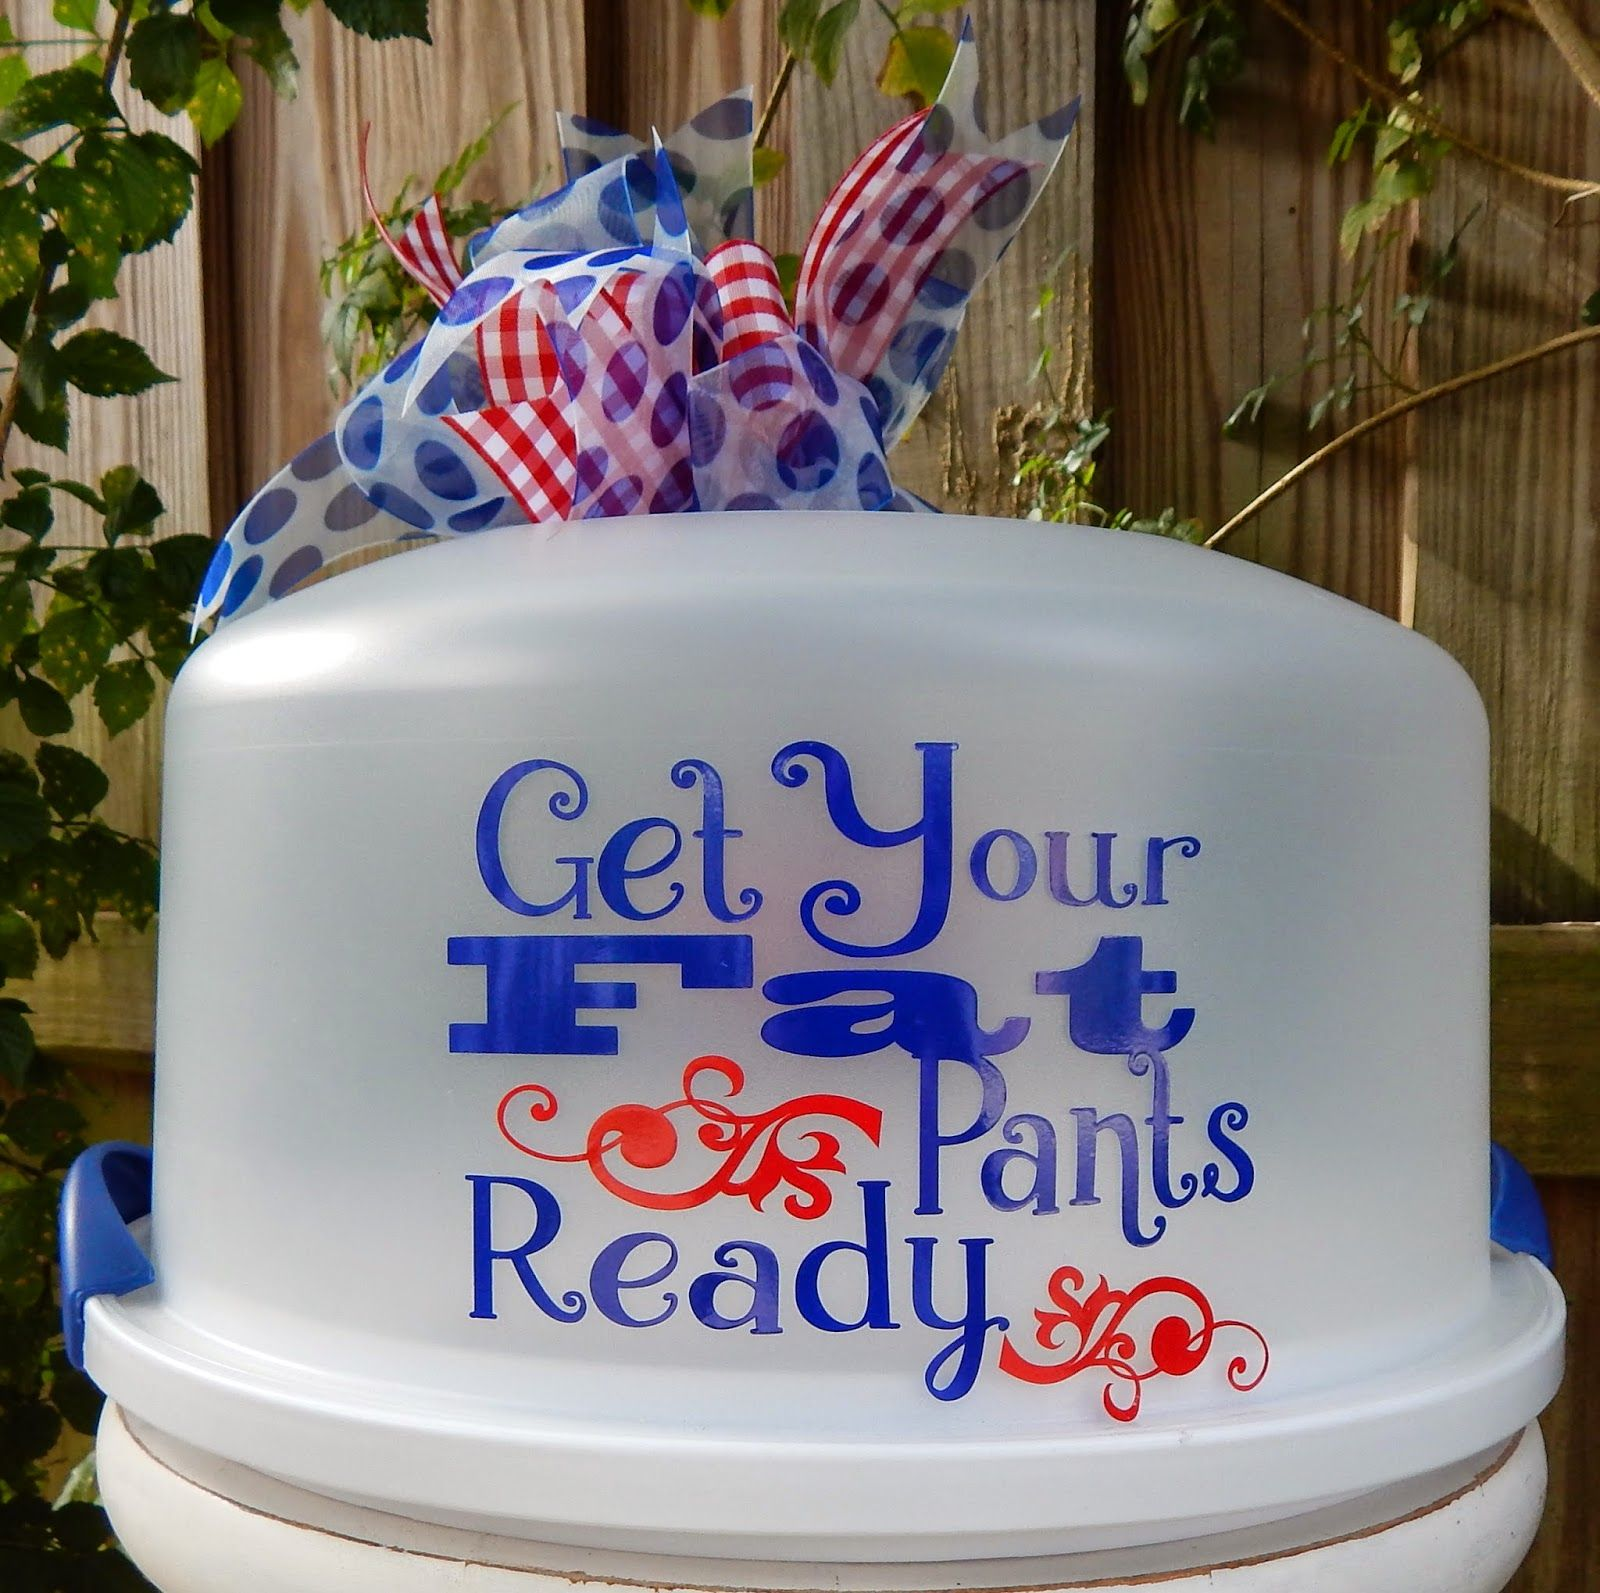 Kitchen Design Cake: Personalized Cake Carrier